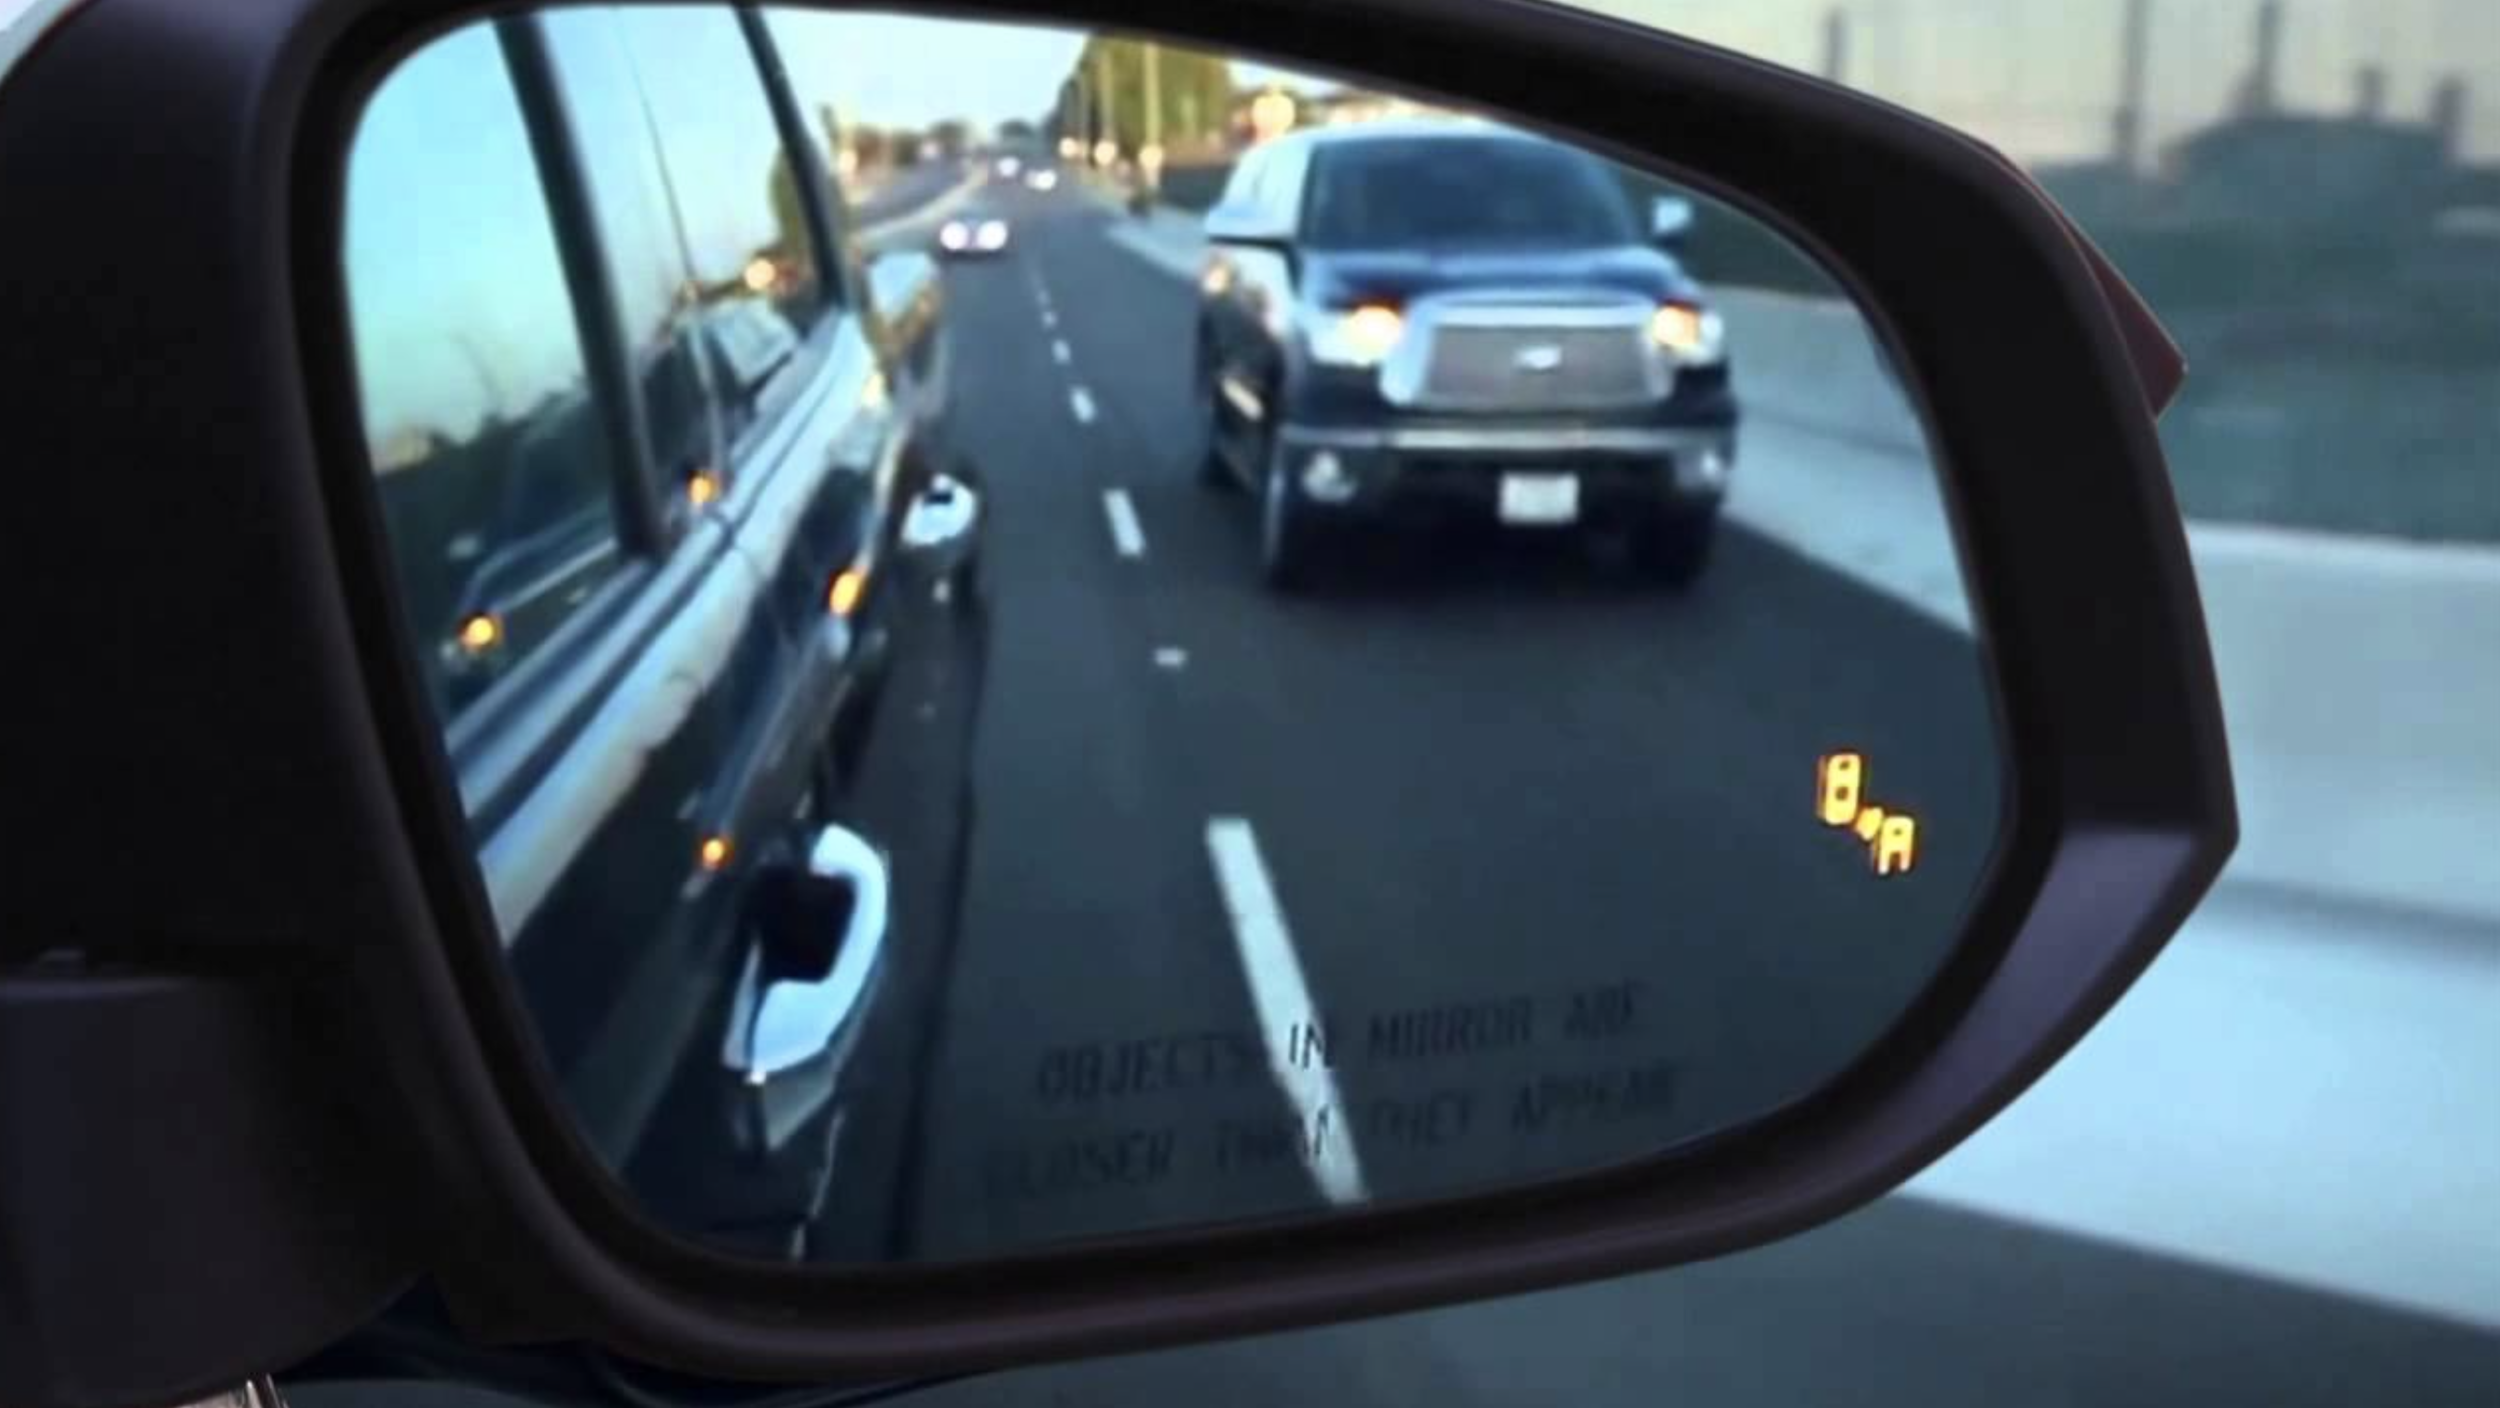 COLLISION AVOIDANCE - The newest focus of vehicle safety is to prevent a collision from ever happening. Seatbelts and airbags are effective safety measures, but avoiding potential collisions keeps the road safer for everyone.Our collision avoidance systems use high-quality video cameras and computer image processing to alert you to driving challenges. It will let you know if you are getting too close to a vehicle, recognizes pedestrians and bicyclists and can even see traffic signs and lane markings.They can warn of lane veering, exceeding the speed limit and take control of your high beams – turning them on and off as required to keep you safe without blinding oncoming drivers.